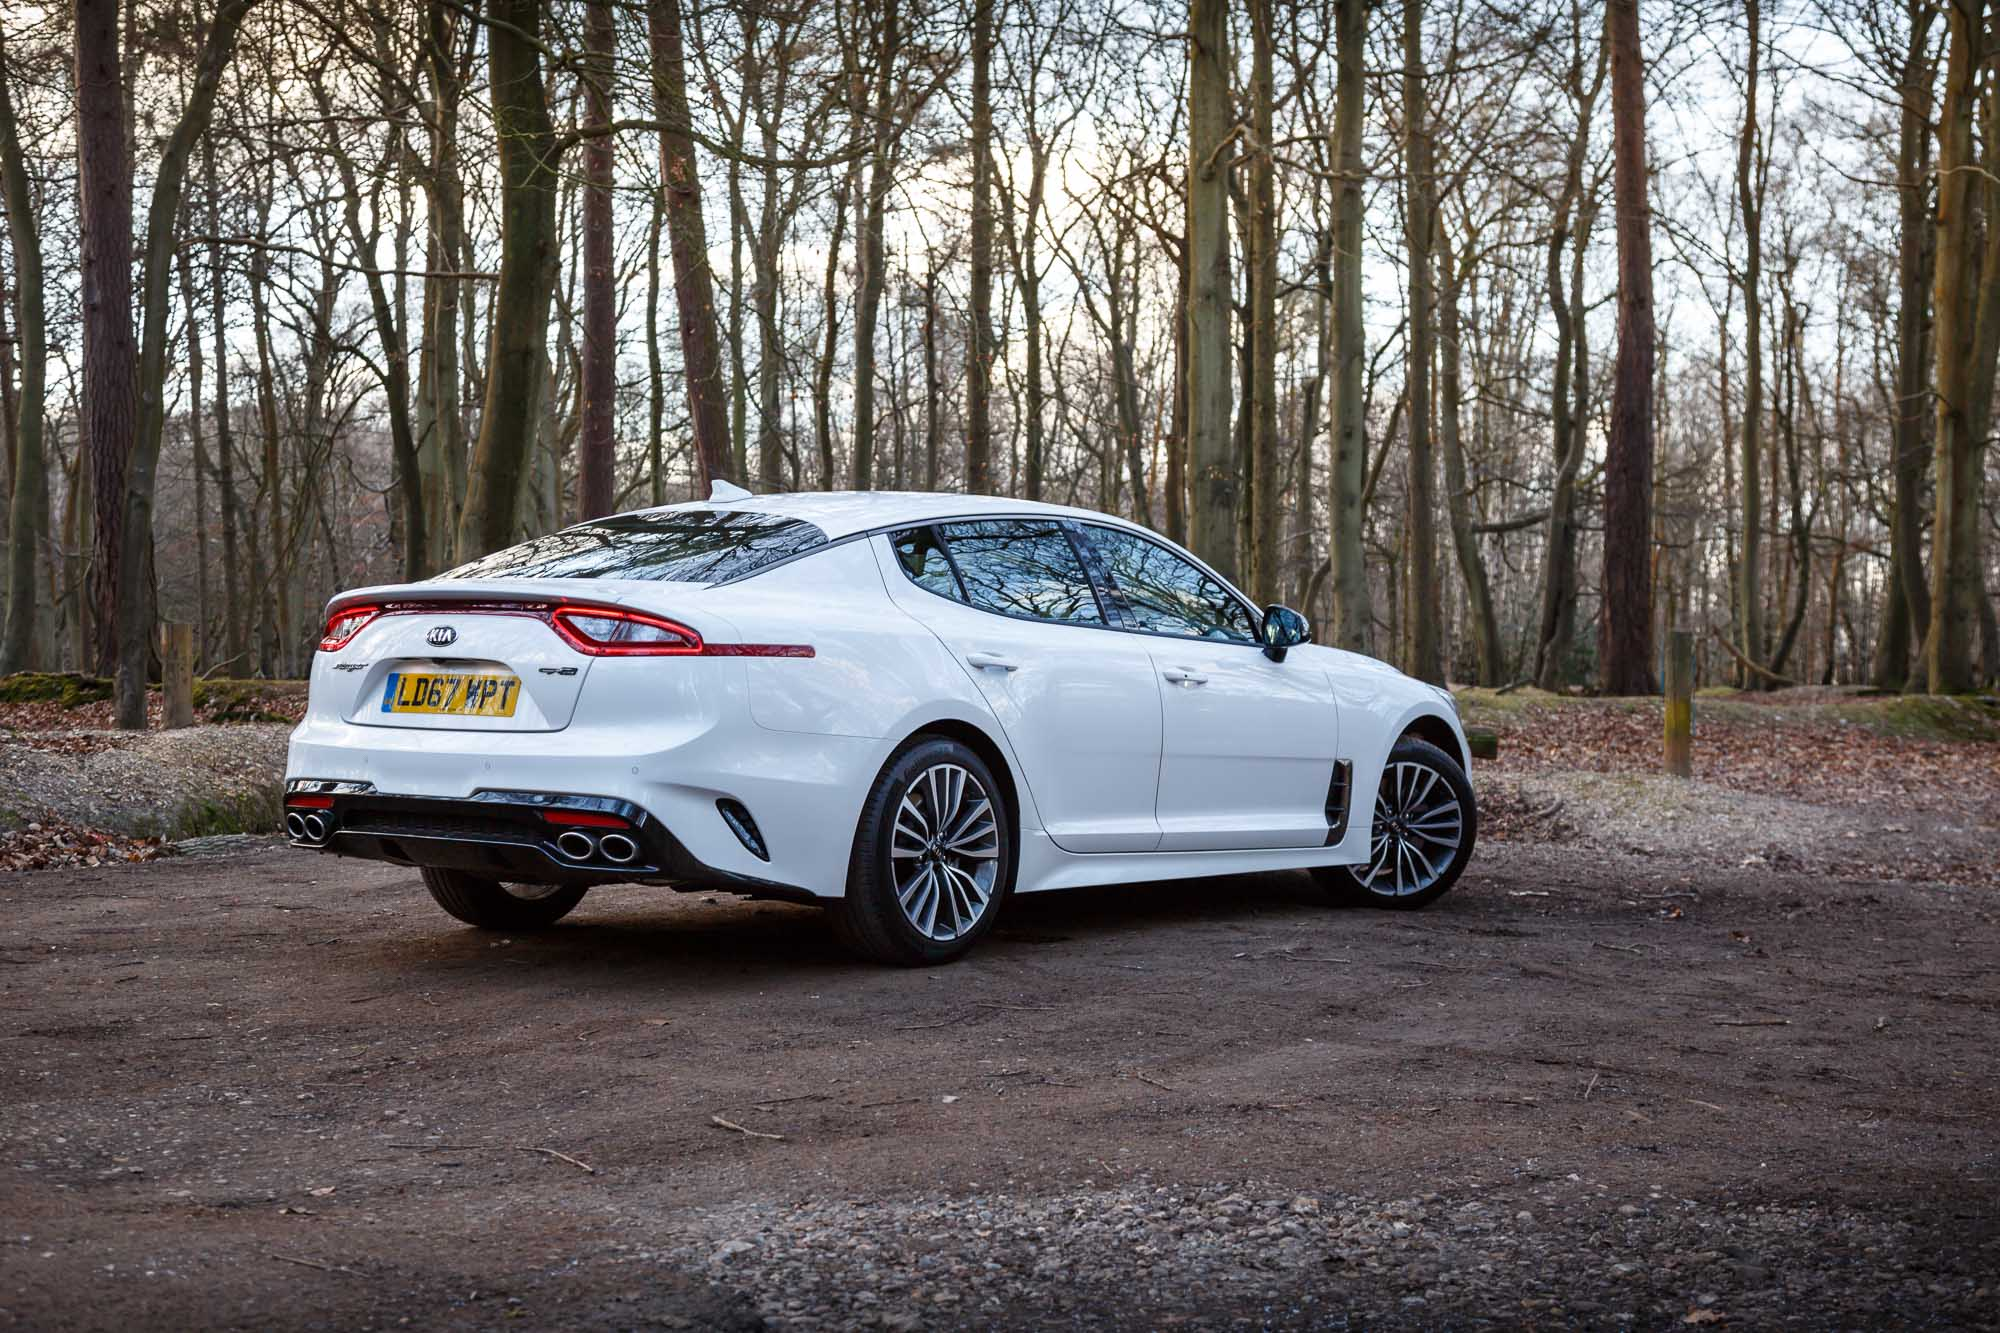 2018 kia stinger gt-line 2.0-litre review (this model a steal at